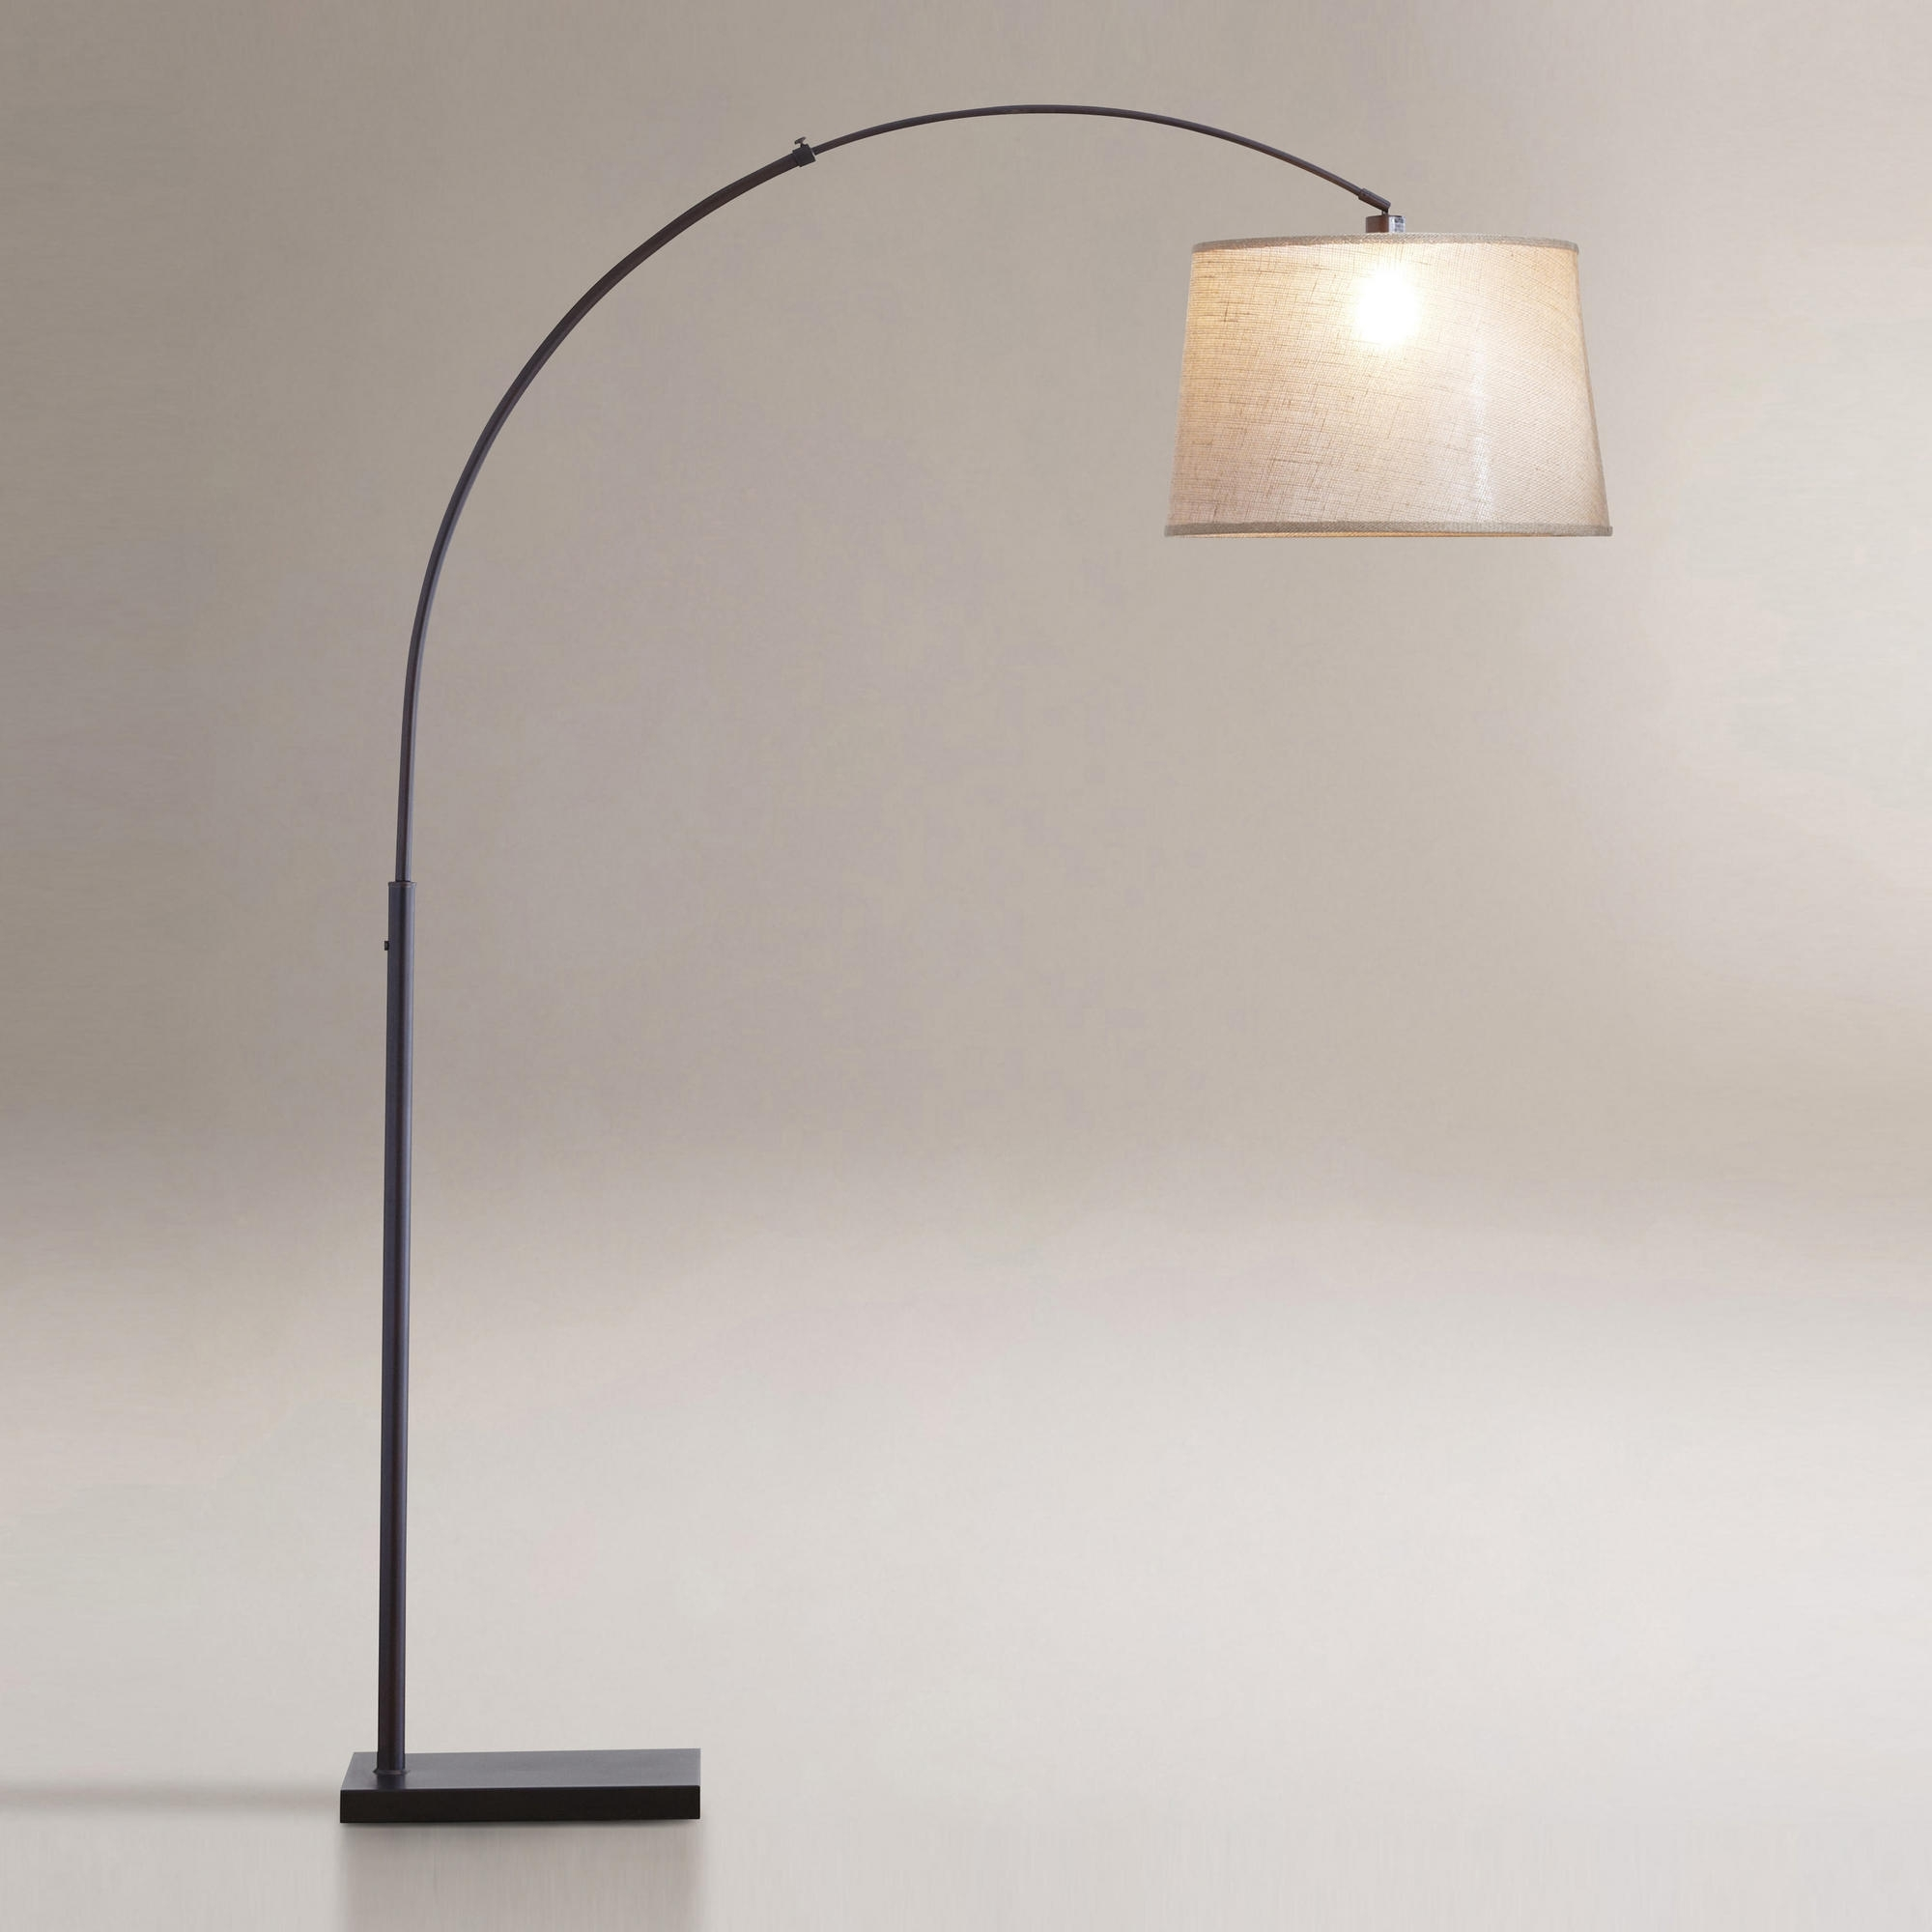 2019 Unique Table Lamps Living Room For Endearing Cool Table Lamps Modern 2 Traditional Night Floor Lamp (View 4 of 20)